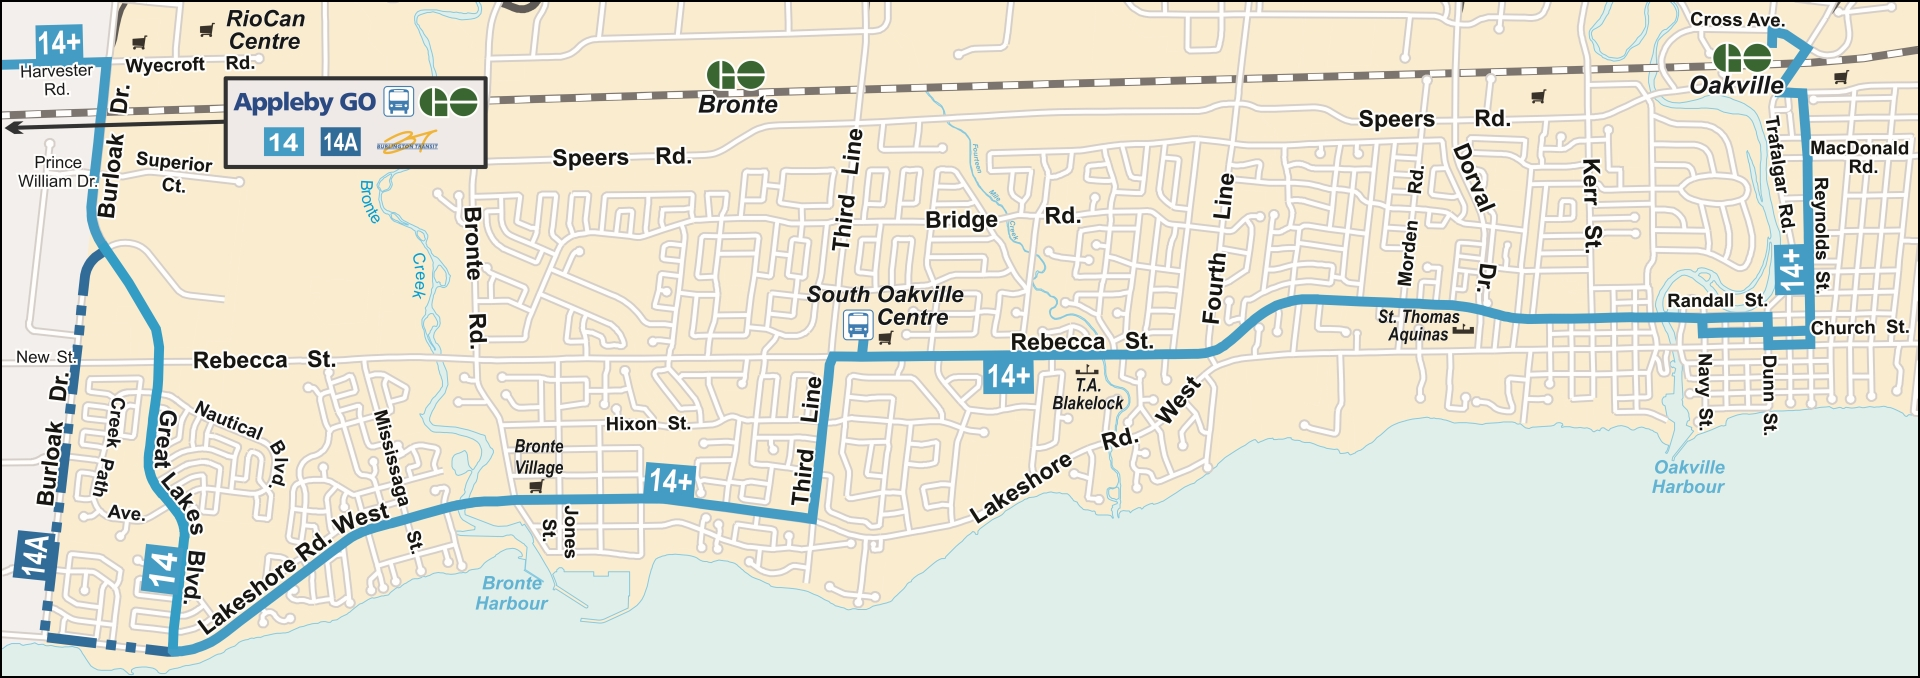 changes to route 14 and new route 14a effective september 3